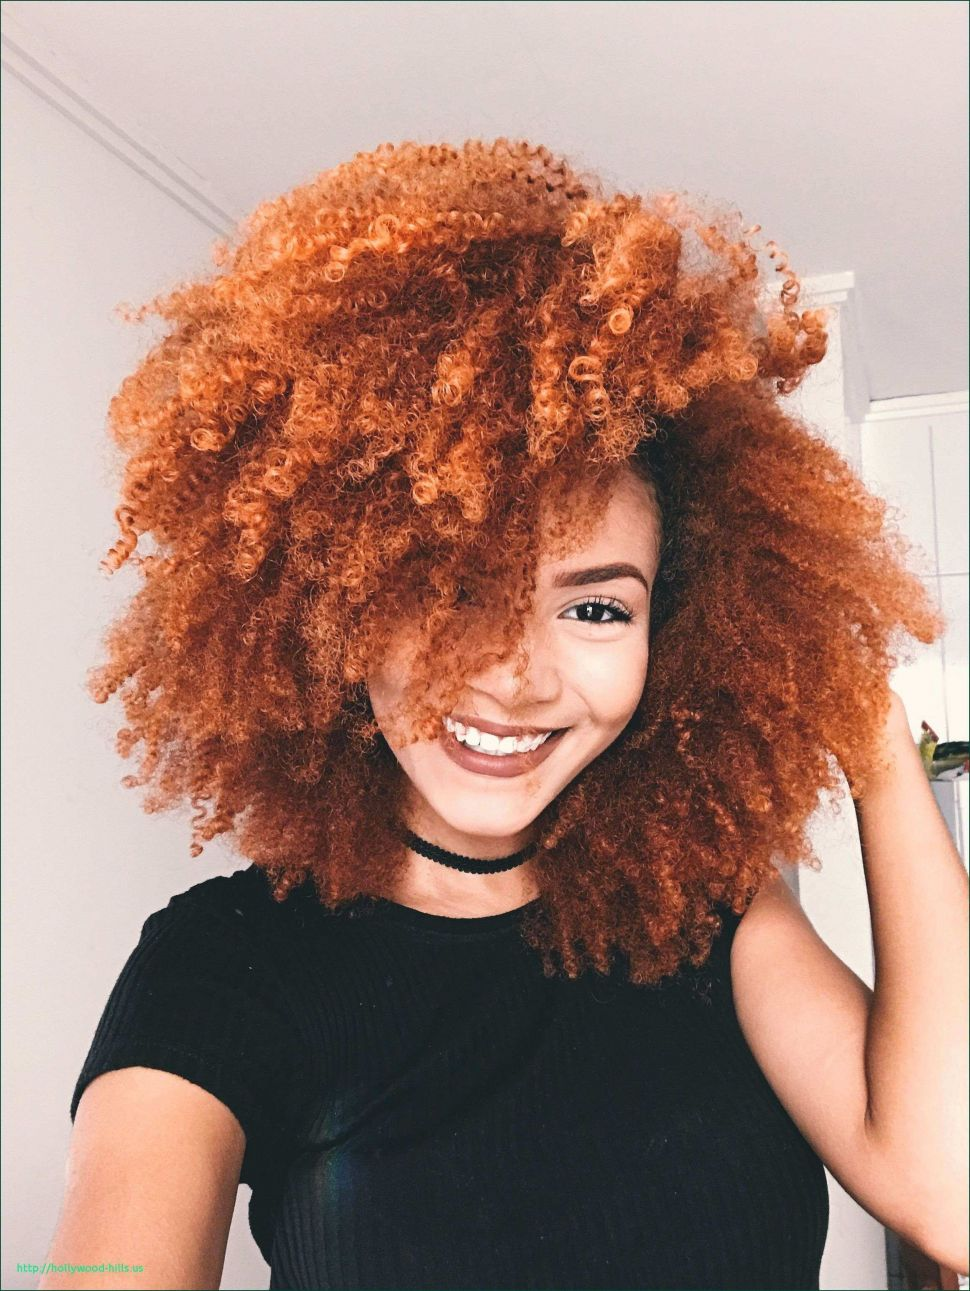 Short-Curly-Hair Cute Curly Hairstyles for Women